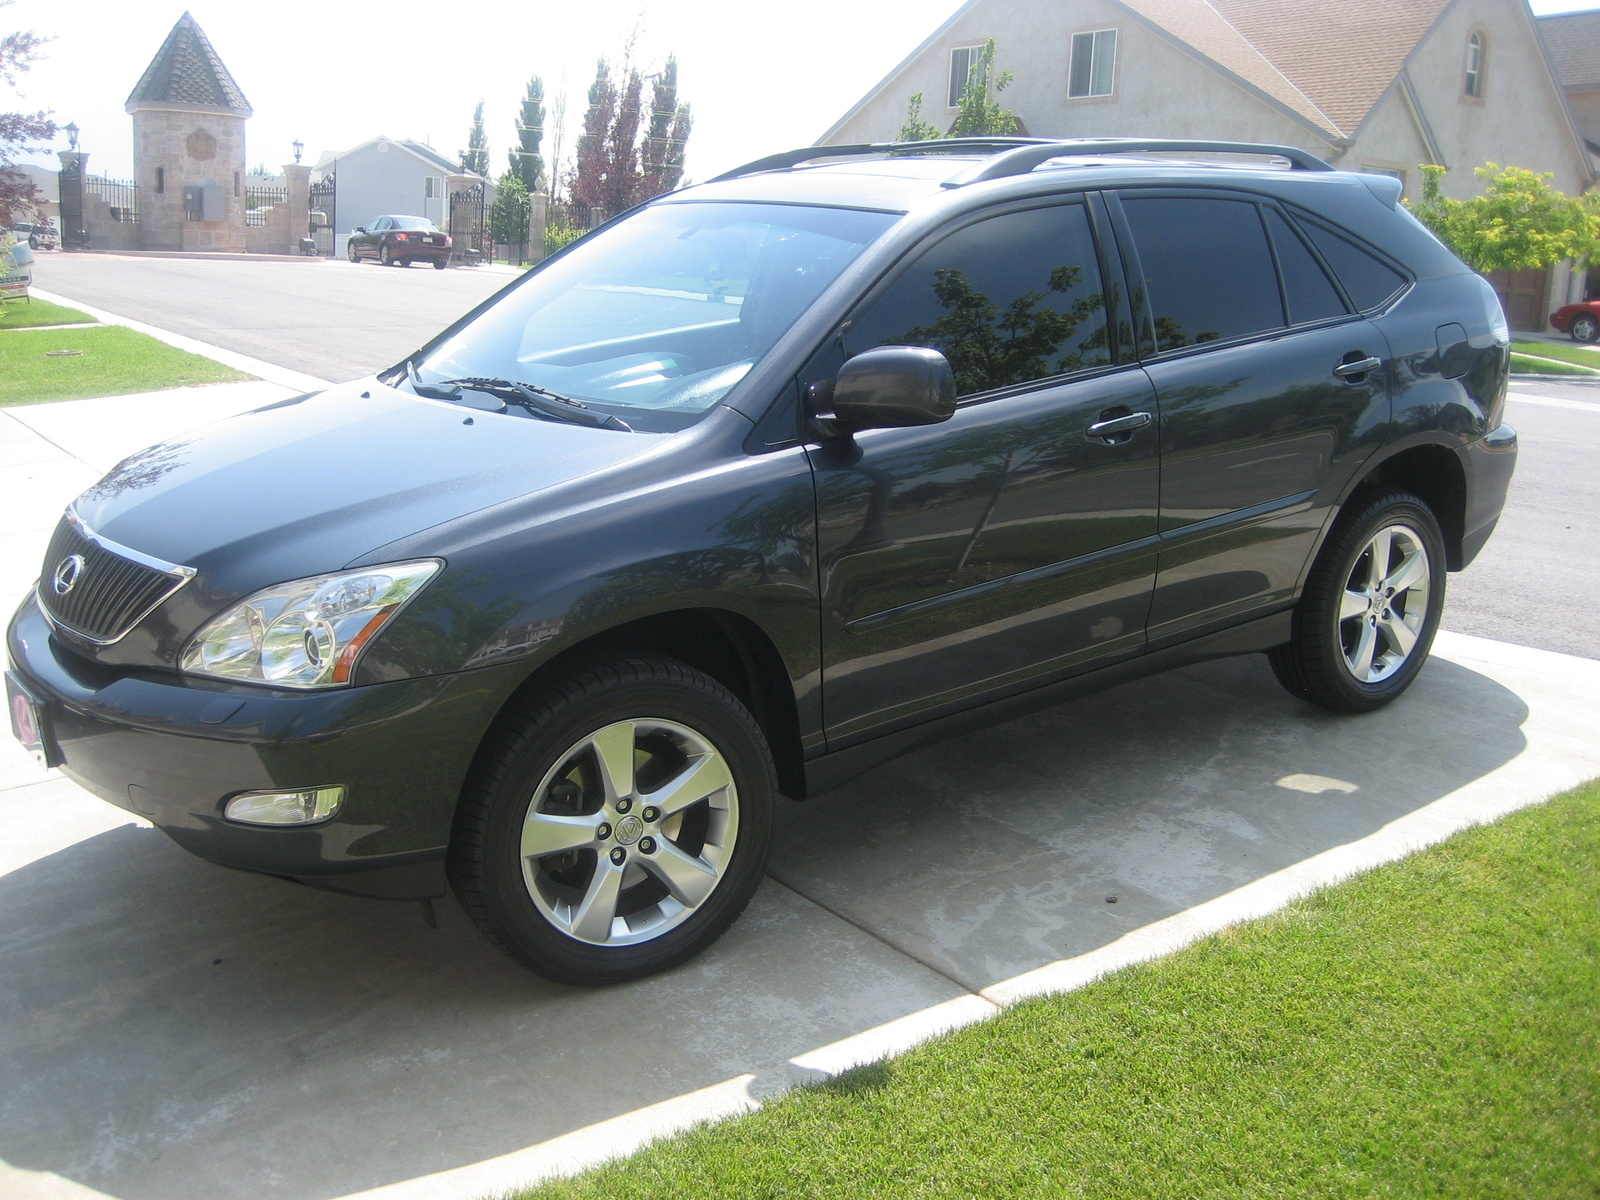 2004 lexus rx 330 new cars used cars car reviews html autos weblog. Black Bedroom Furniture Sets. Home Design Ideas